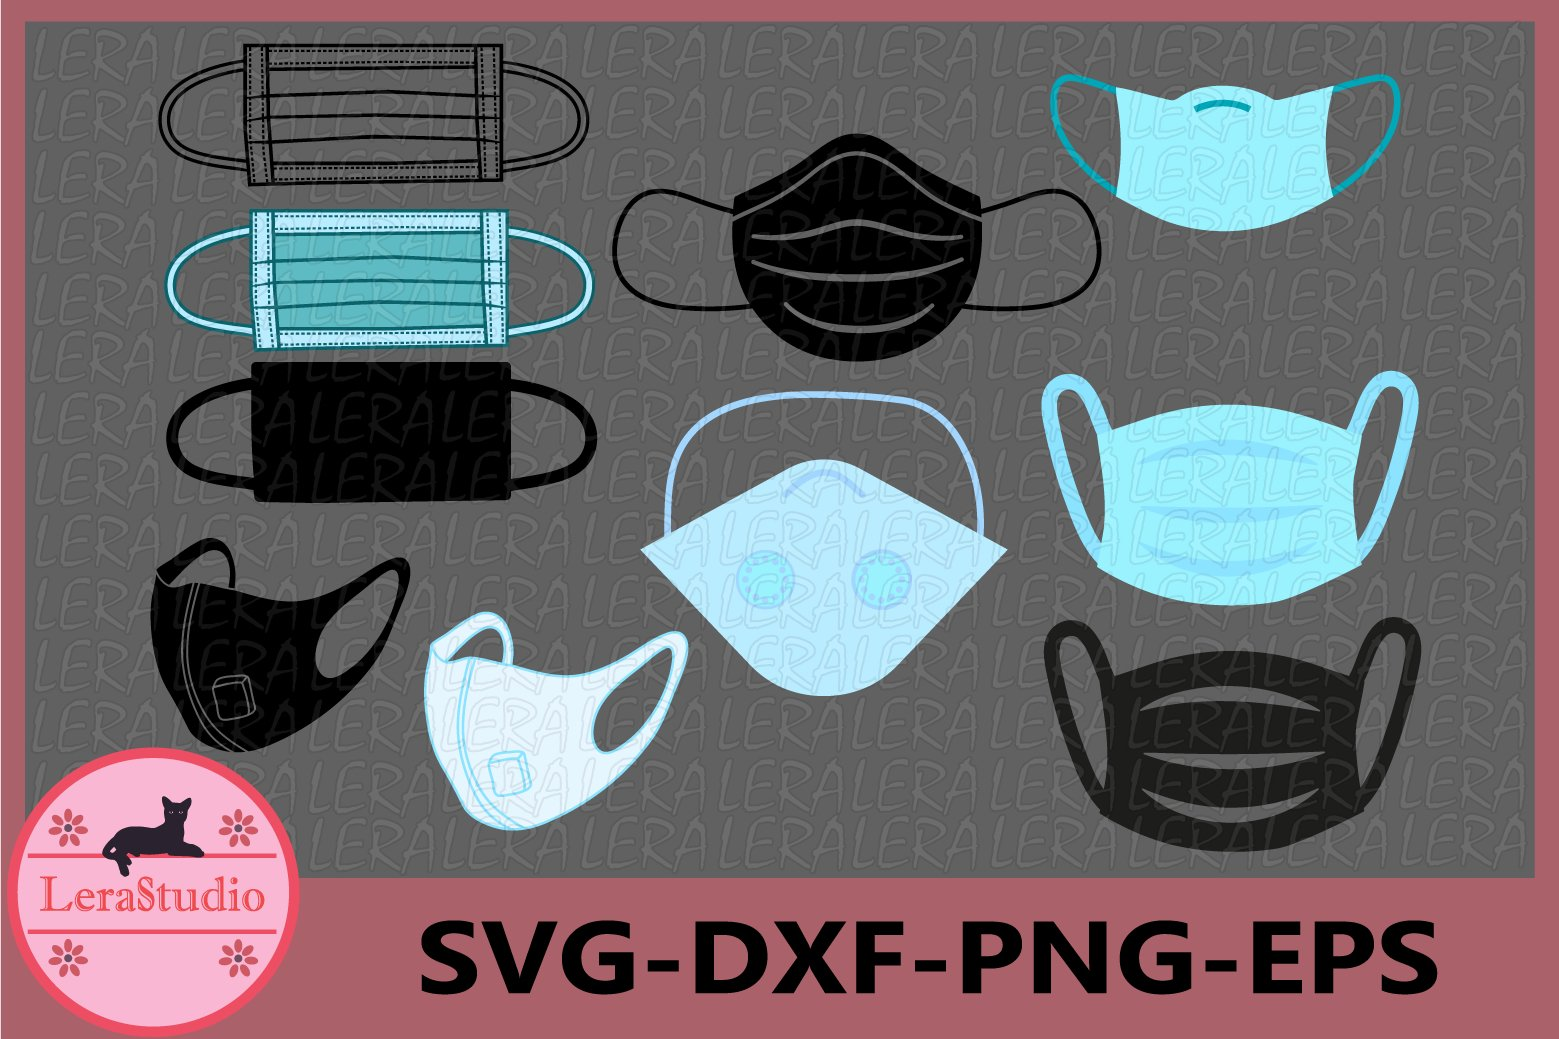 Face Mask Svg Hospital Medical Mask Svg Respirator Mask 541612 Svgs Design Bundles